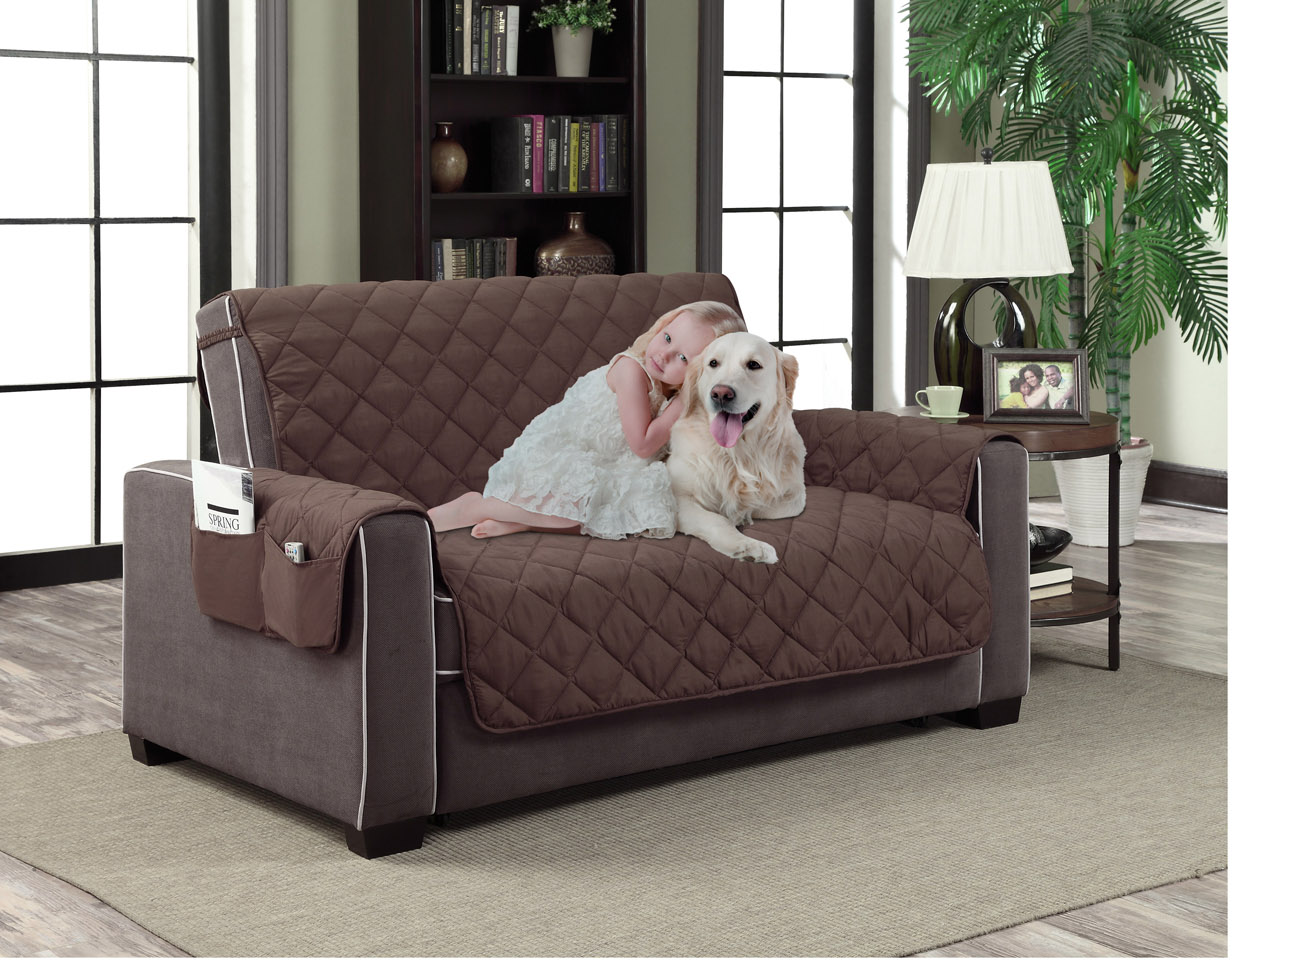 Home Dynamix Slipcovers: All Season Quilted Microfiber Pet Furniture Couch  Protector Cover   Brown